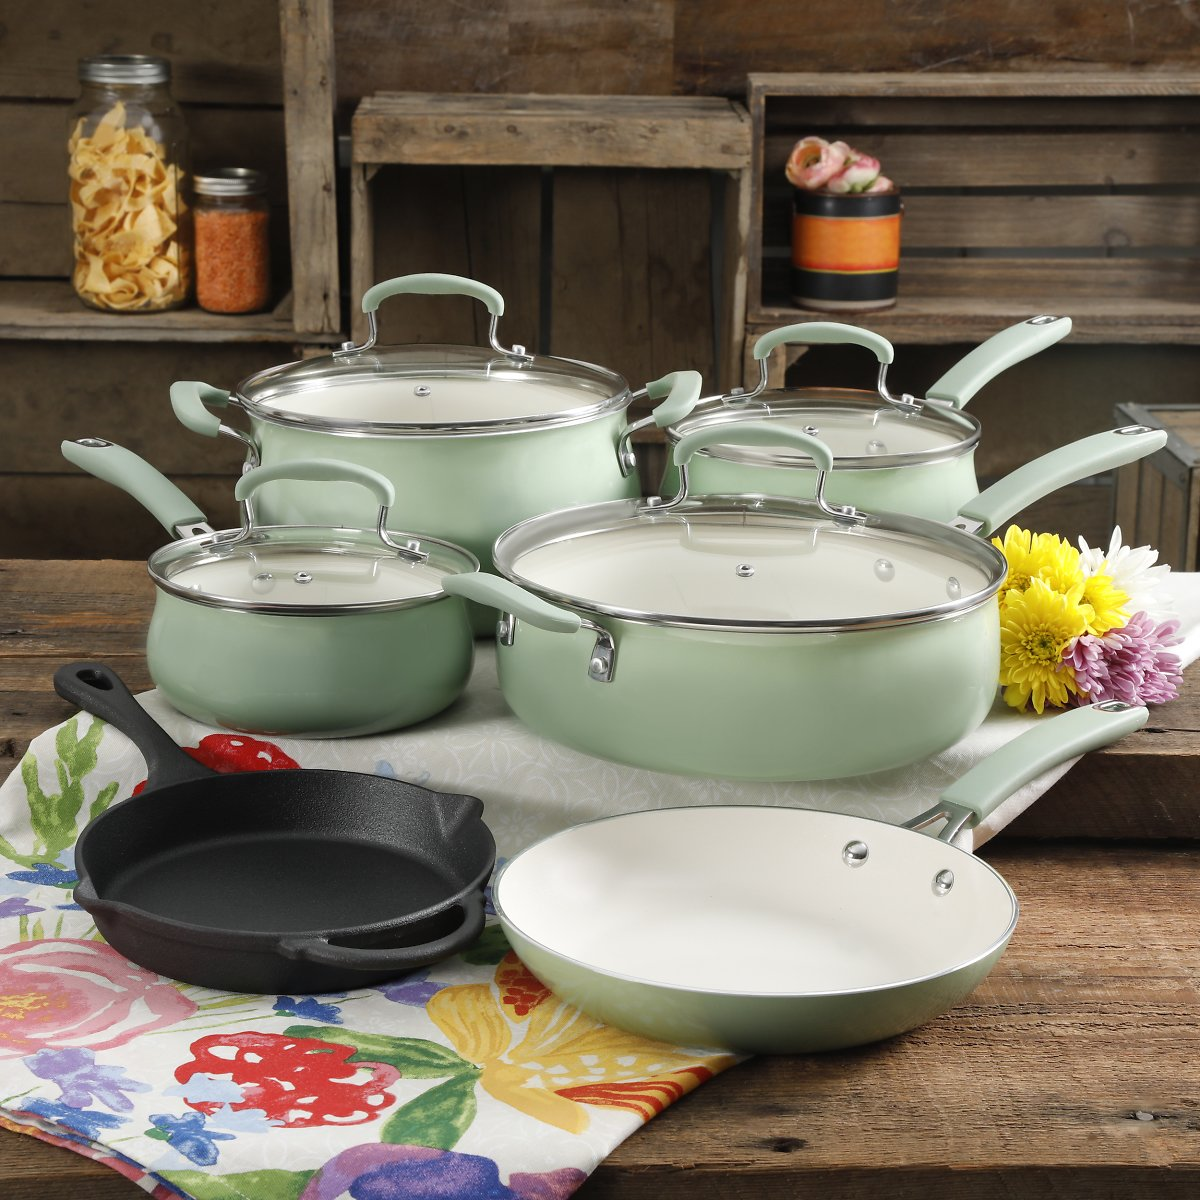 The Pioneer Woman Classic Belly 10 Piece Ceramic Non-stick and Cast Iron Cookware Set, Mint